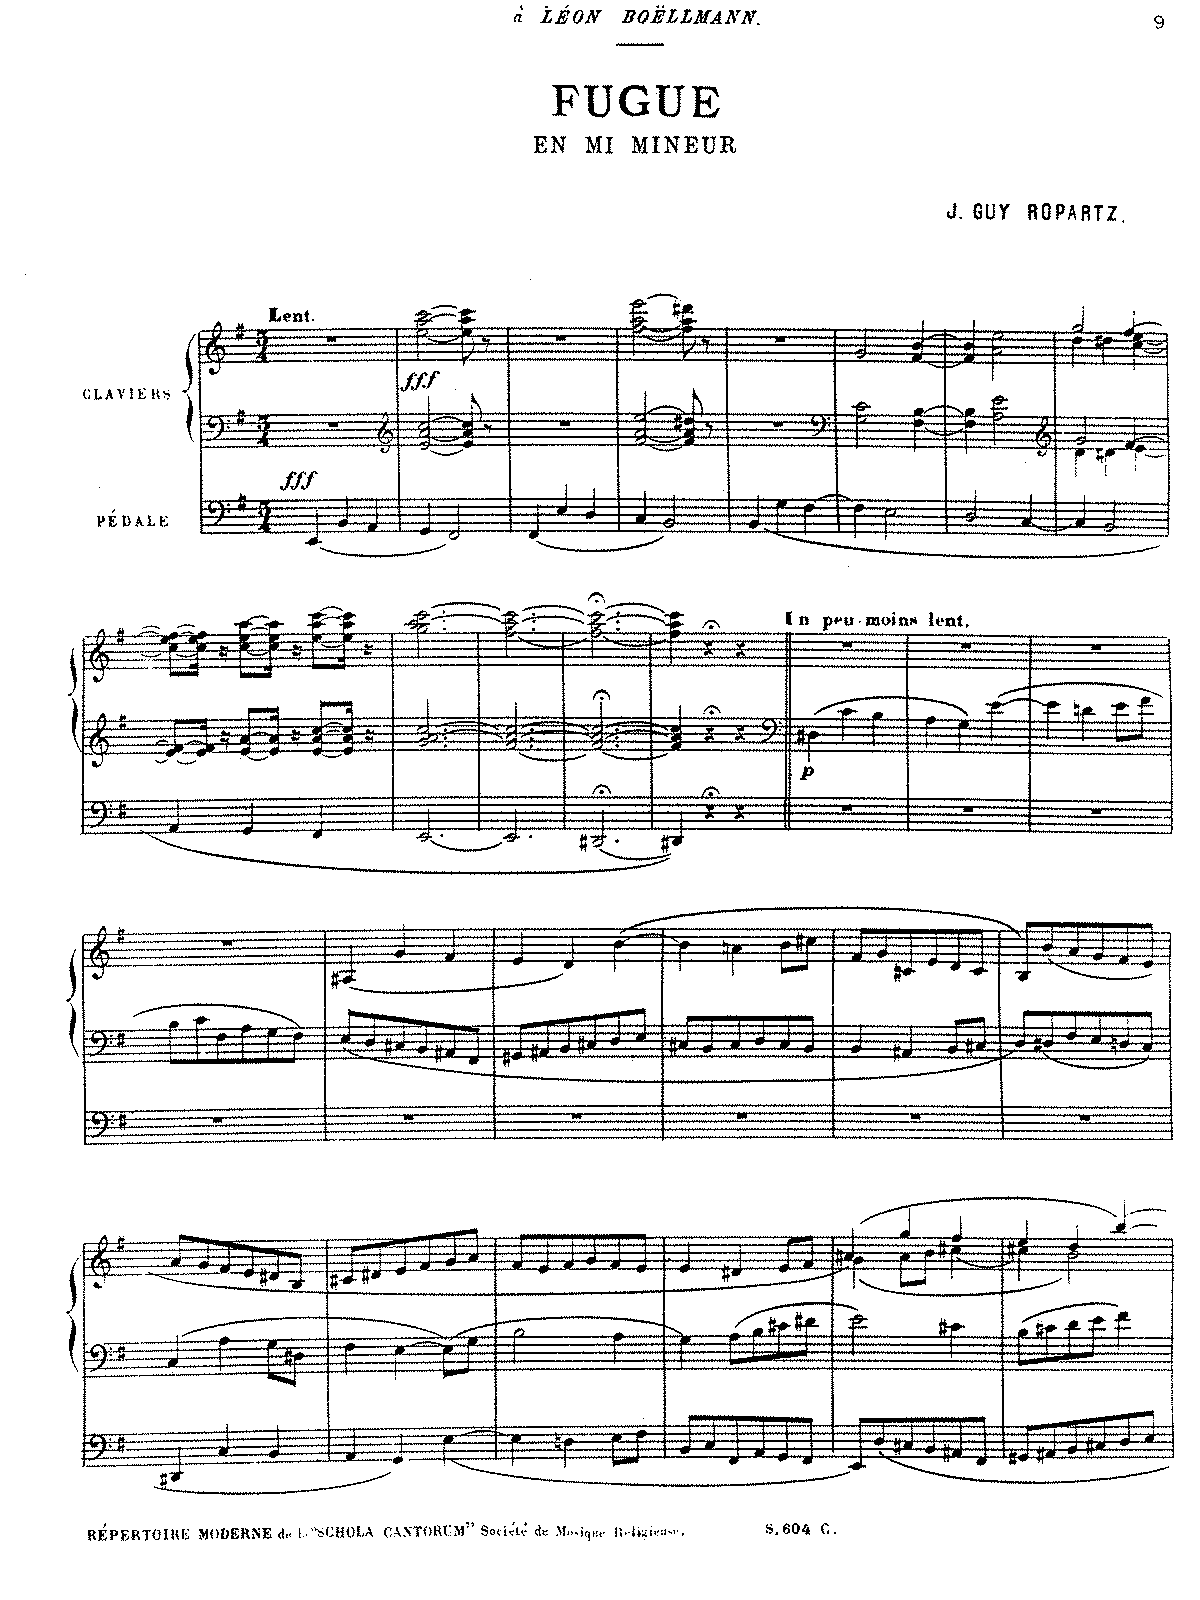 PMLP113003-Ropartz - Fugue in E minor (organ).pdf